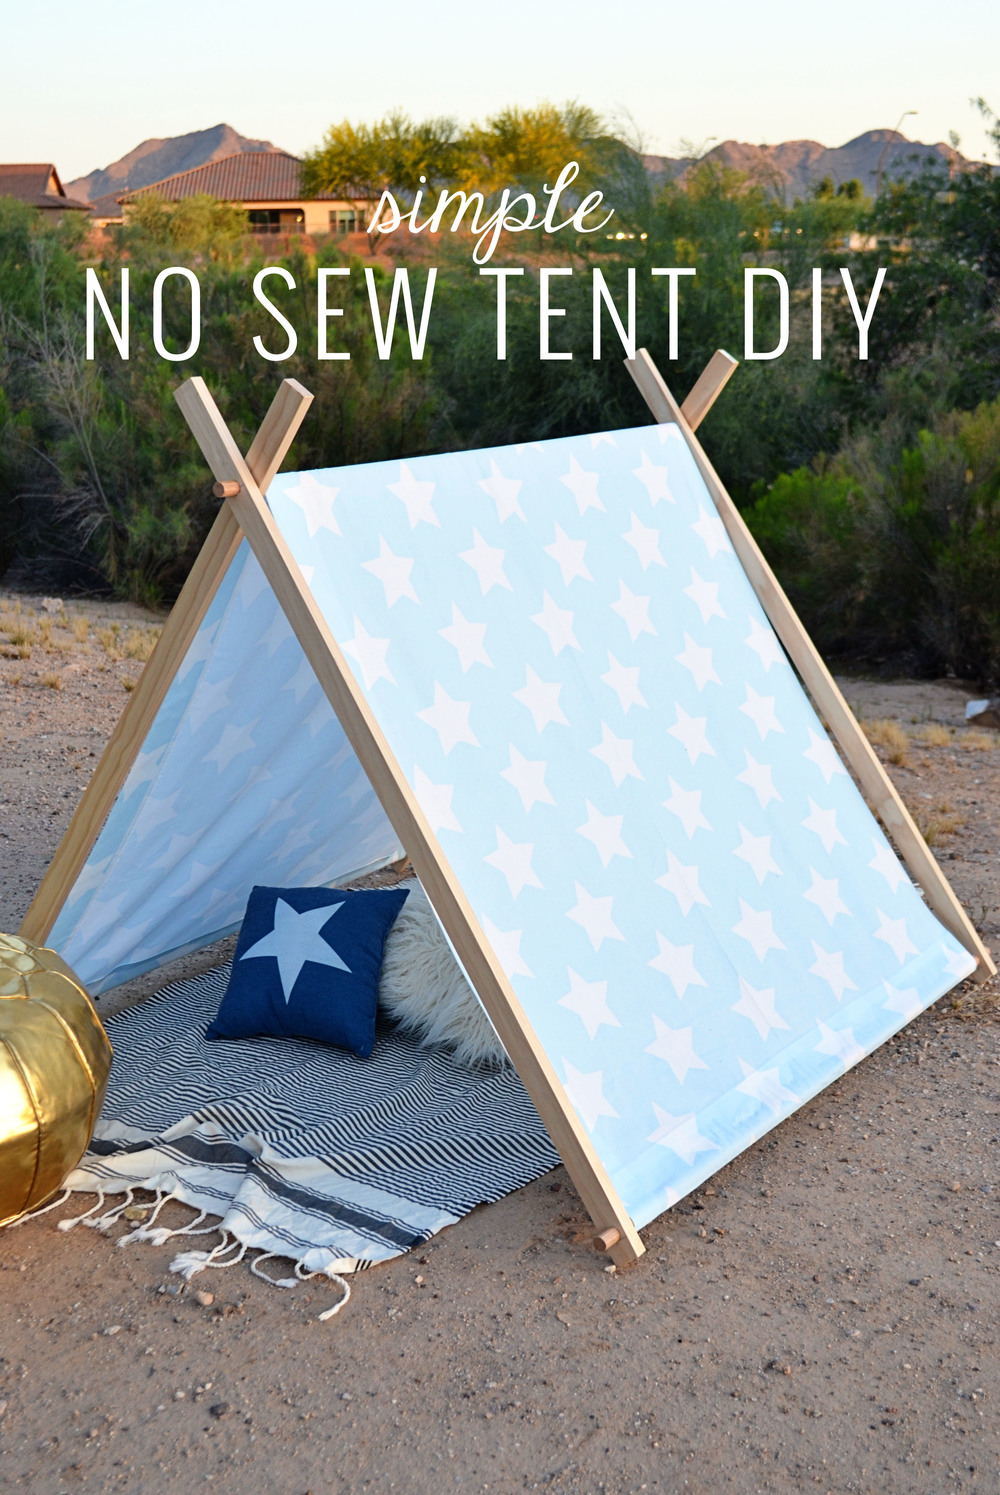 Simple No Sew DIY Kidu0027s Tent | Momma Society | .mommasociety.com & Simple No Sew Kidu0027s Tent DIY u2014 Momma Society